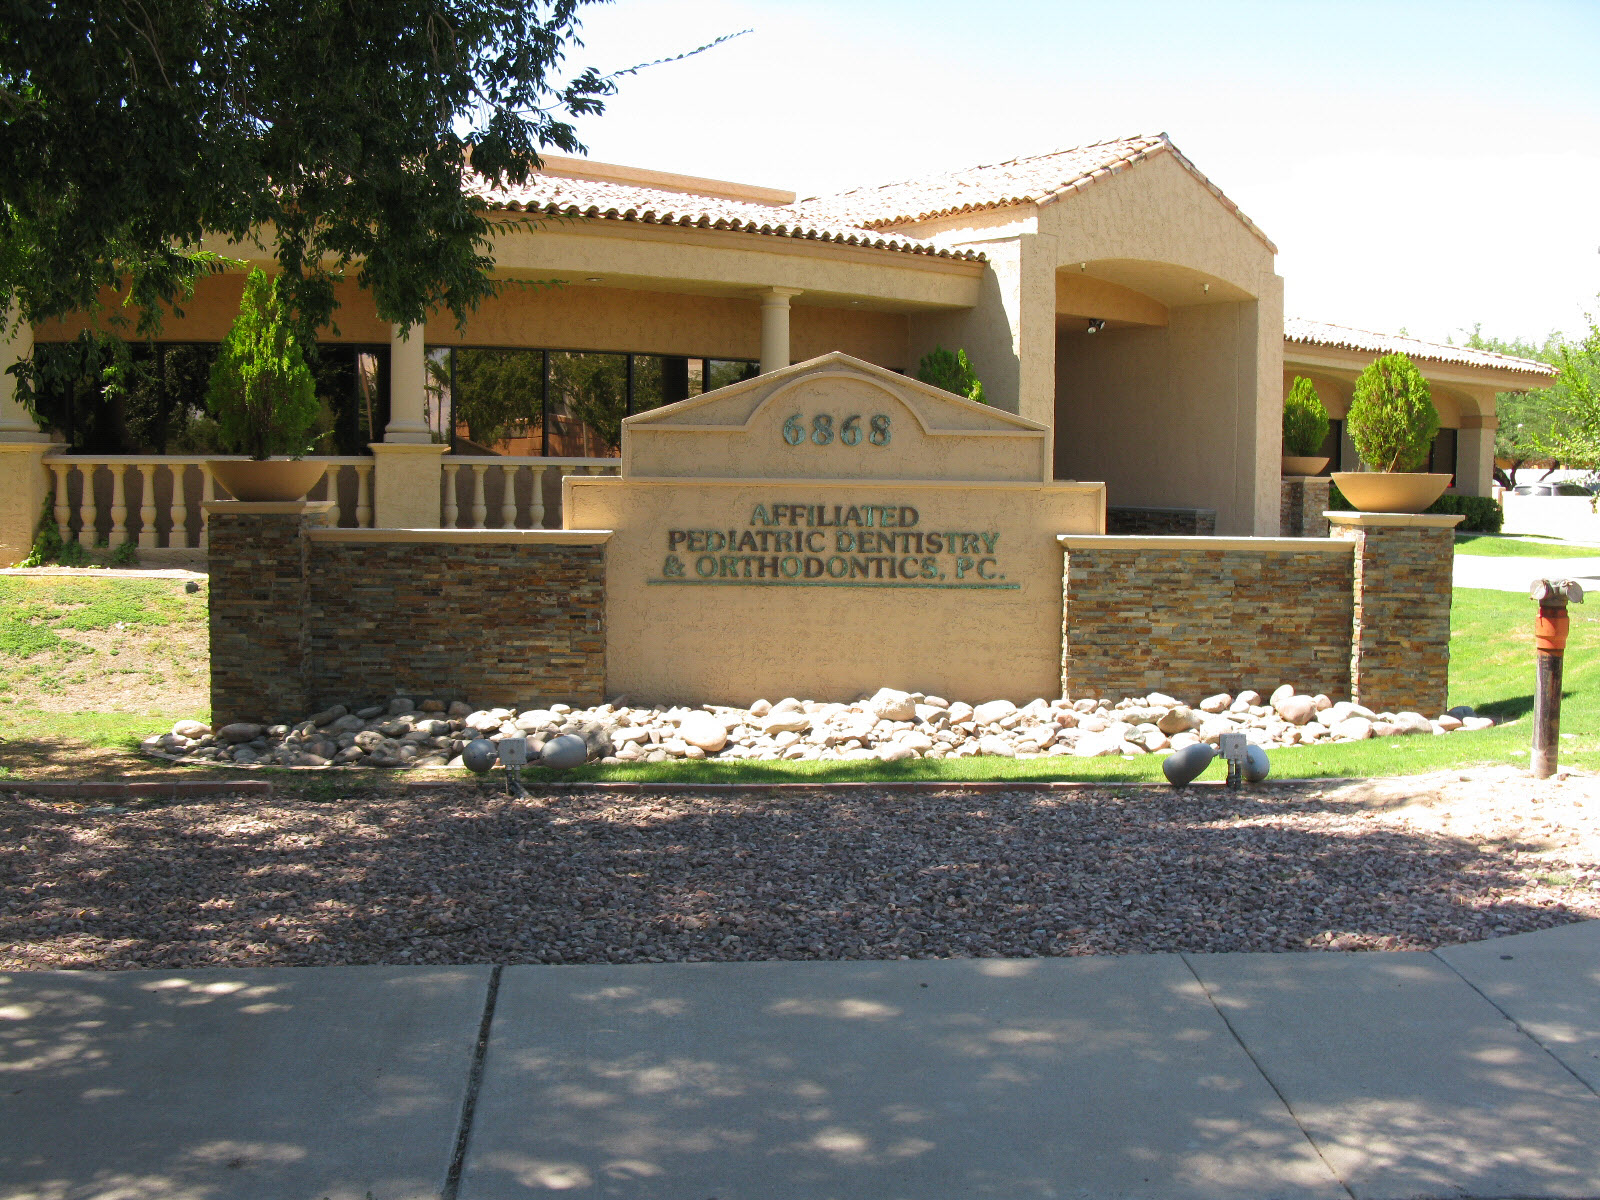 Affiliated Pediatric Dentistry & Orthodontics: Grayhawk image 2